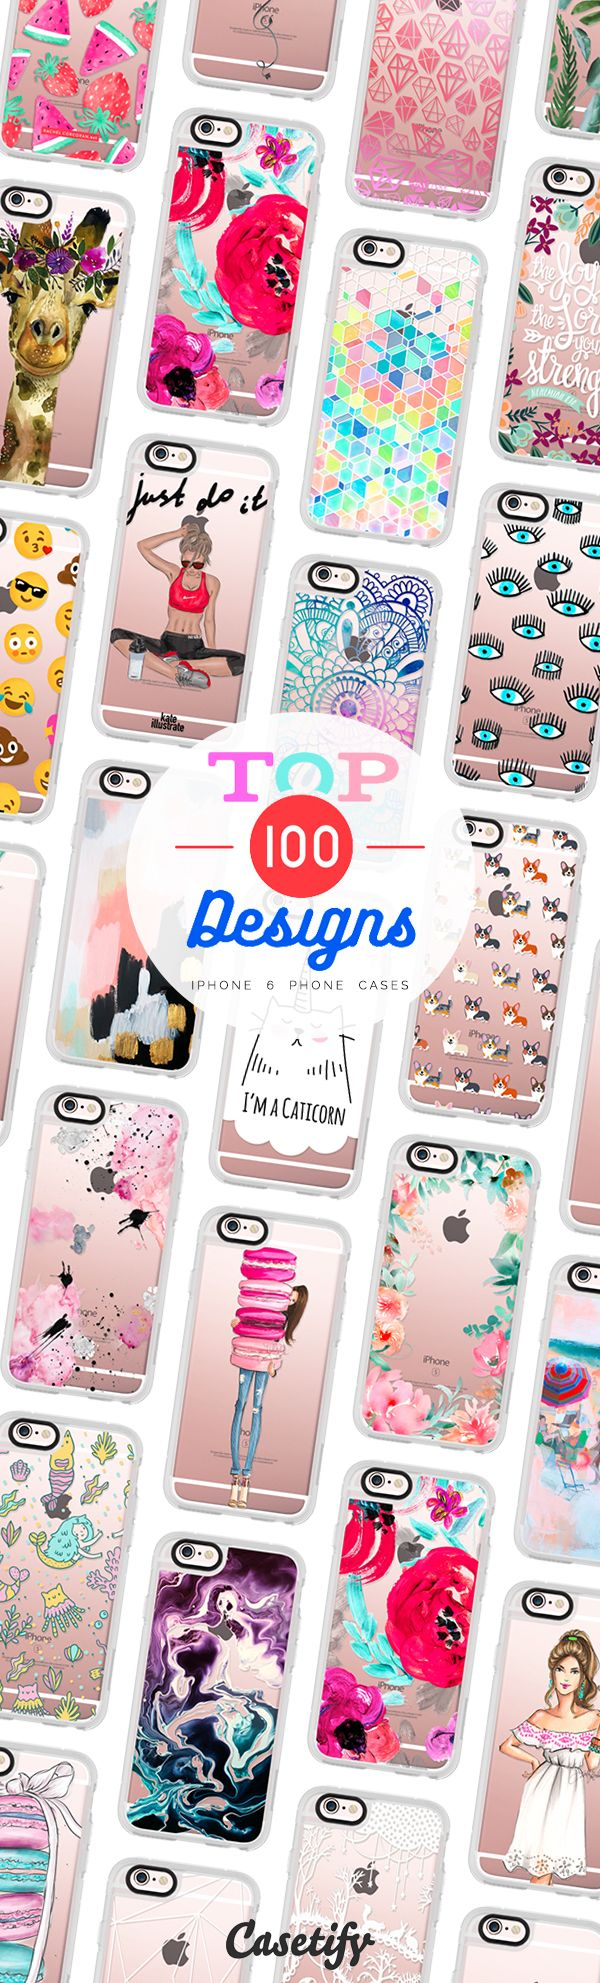 Top 100 iPhone 6 protective phone case designs   Click through to see more animal food marble floral iPhone phone case designs >>> https://www.casetify.com/collections/top_100_designs   @casetify